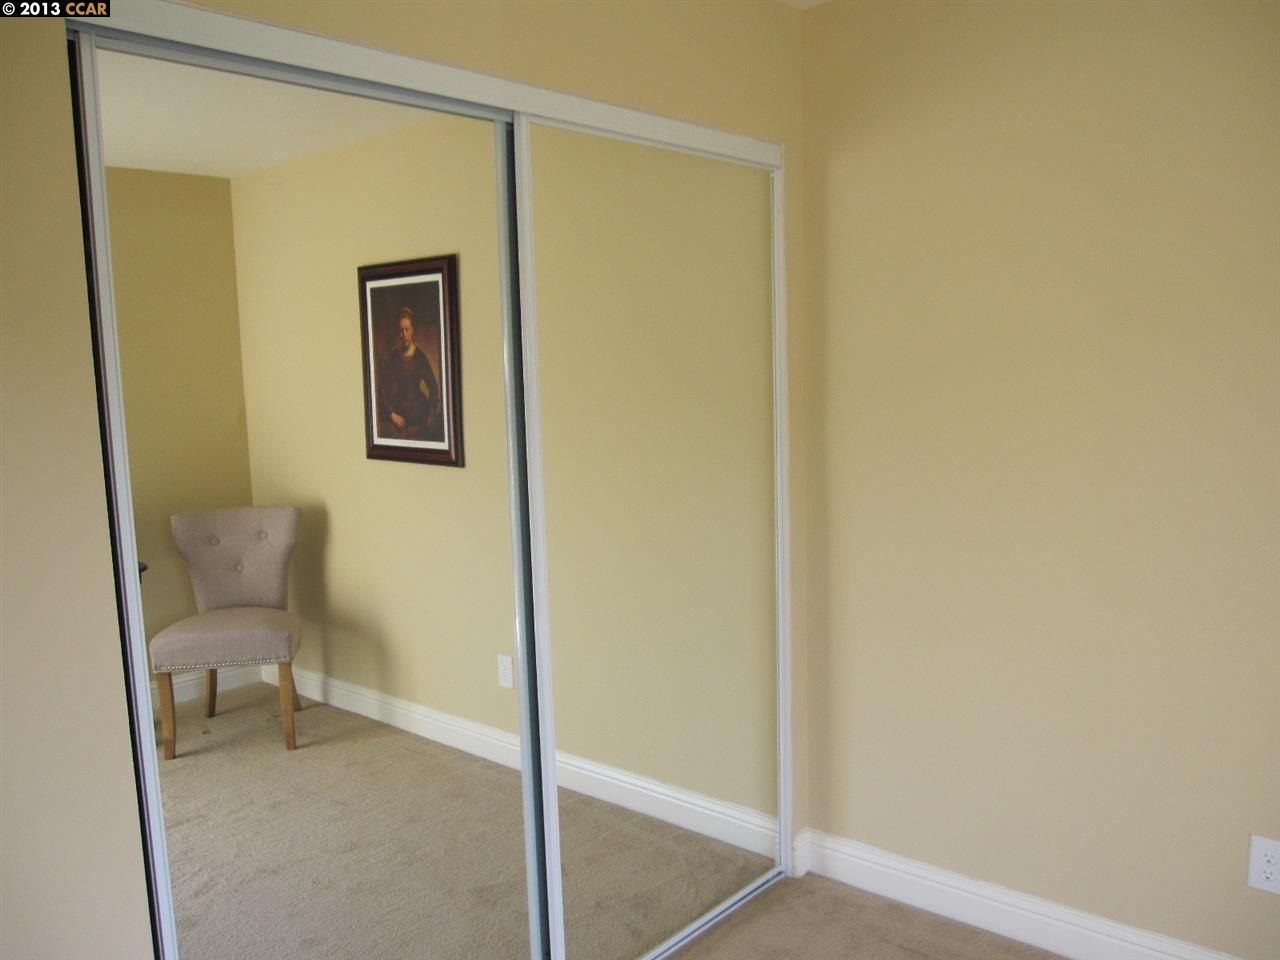 Additional photo for property listing at 2637 ALHAMBRA WAY  Pinole, California 94564 United States